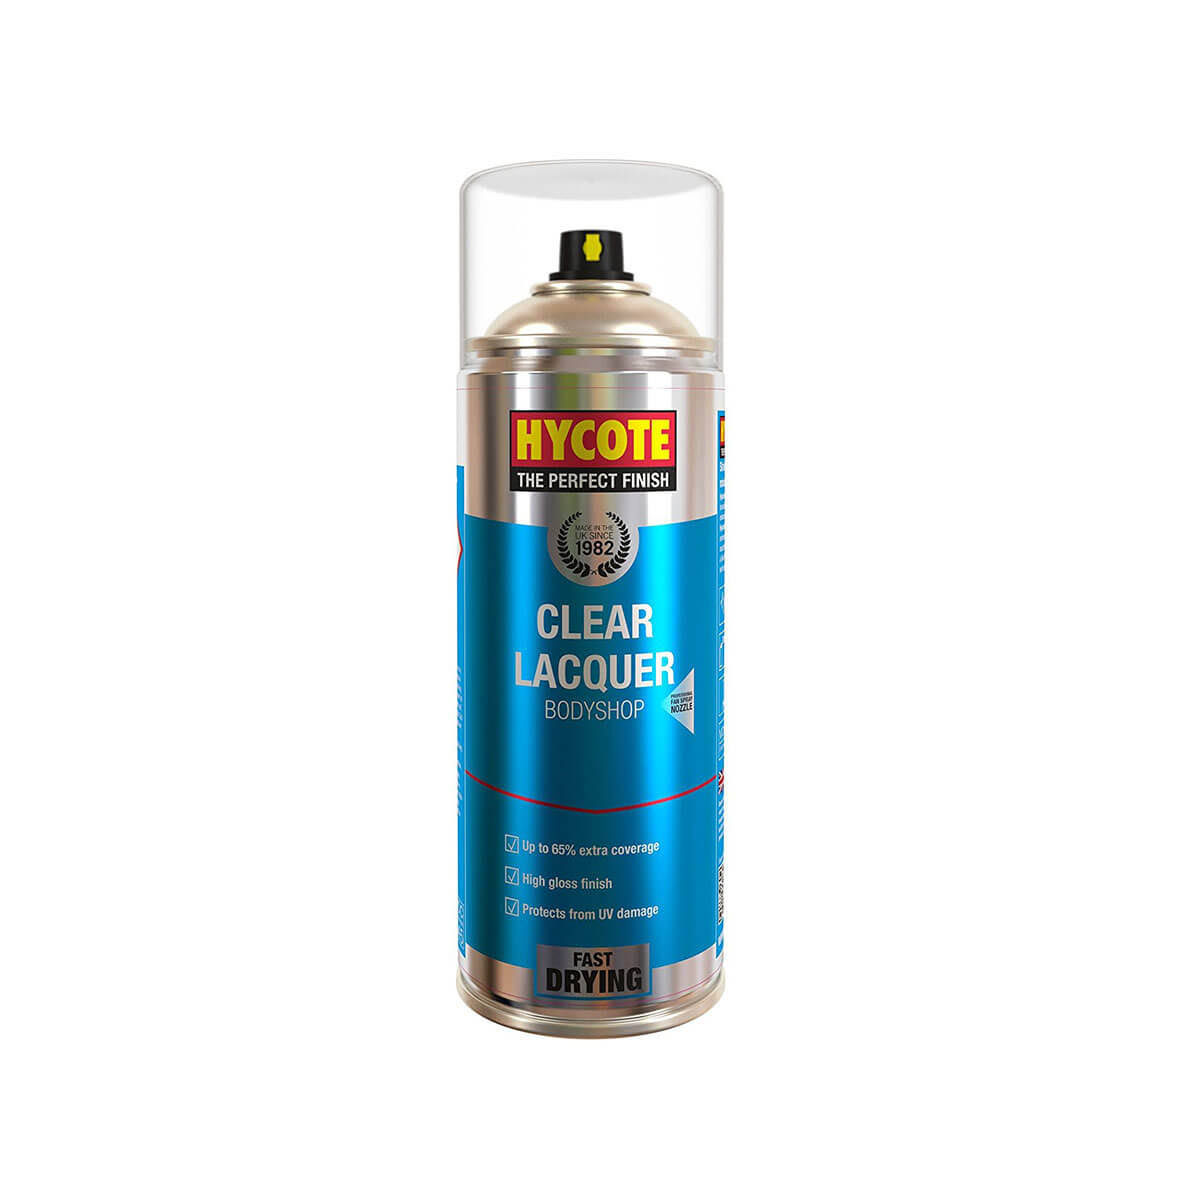 Hycote Clear Lacquer Spray Paint - 400ml